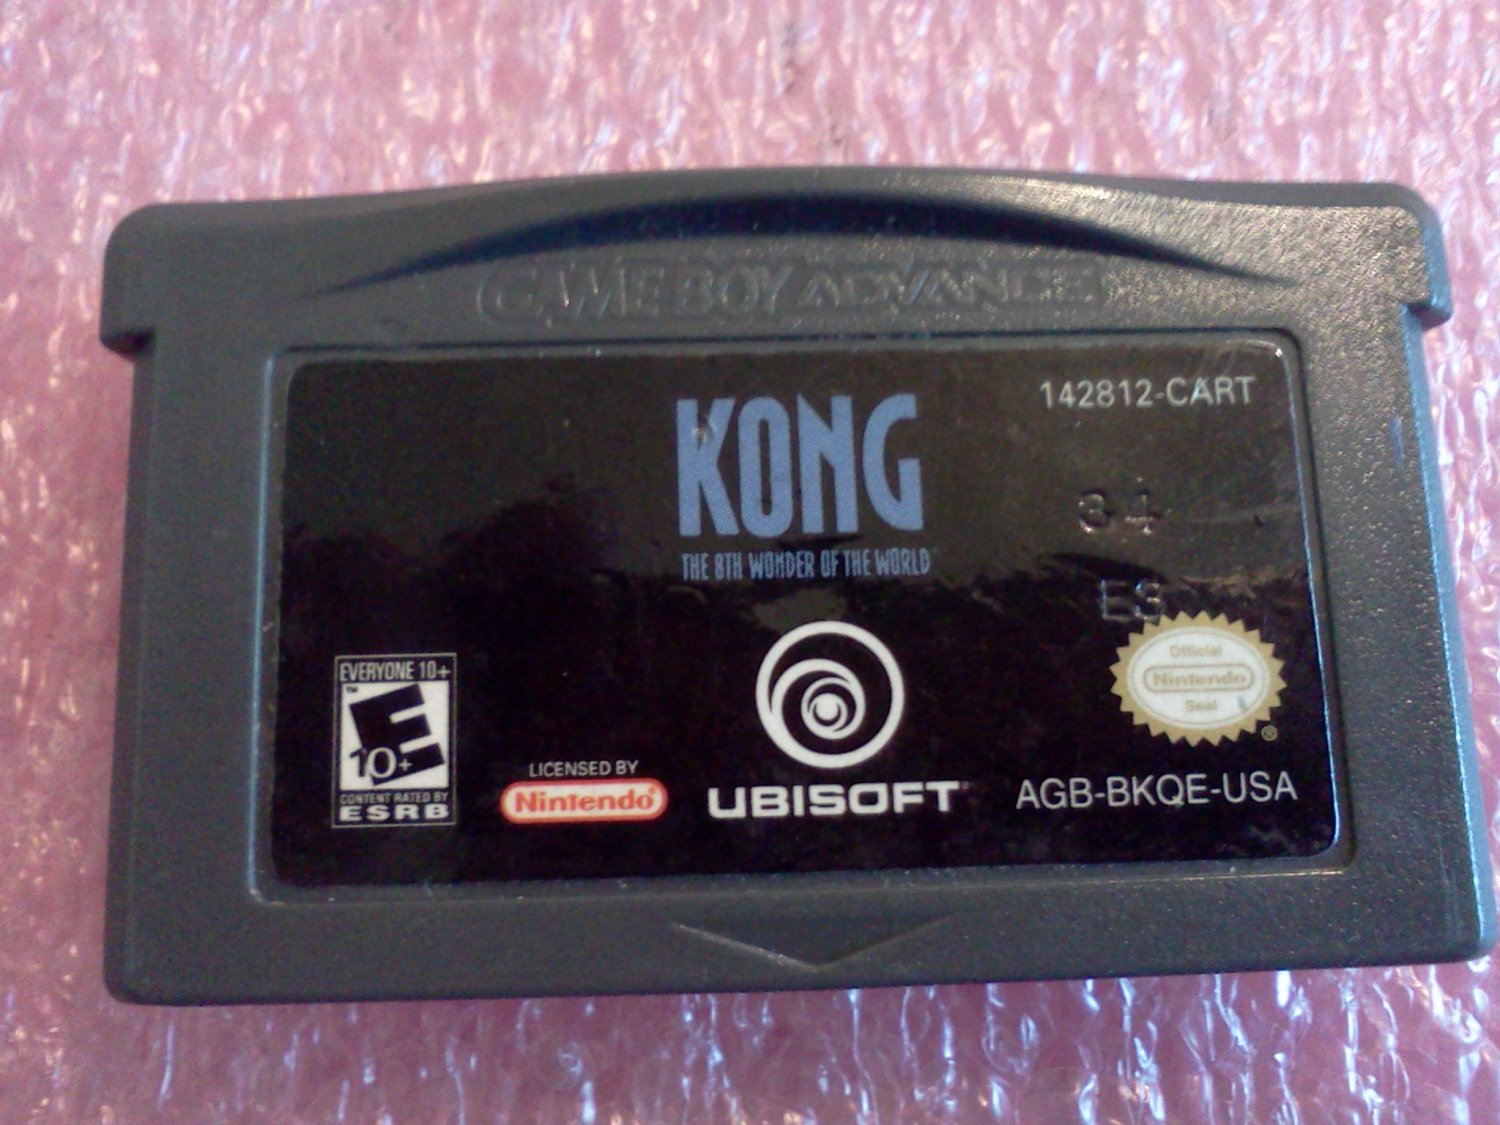 Kong: The 8th Wonder of the World (Nintendo Game Boy Advance, 2005)